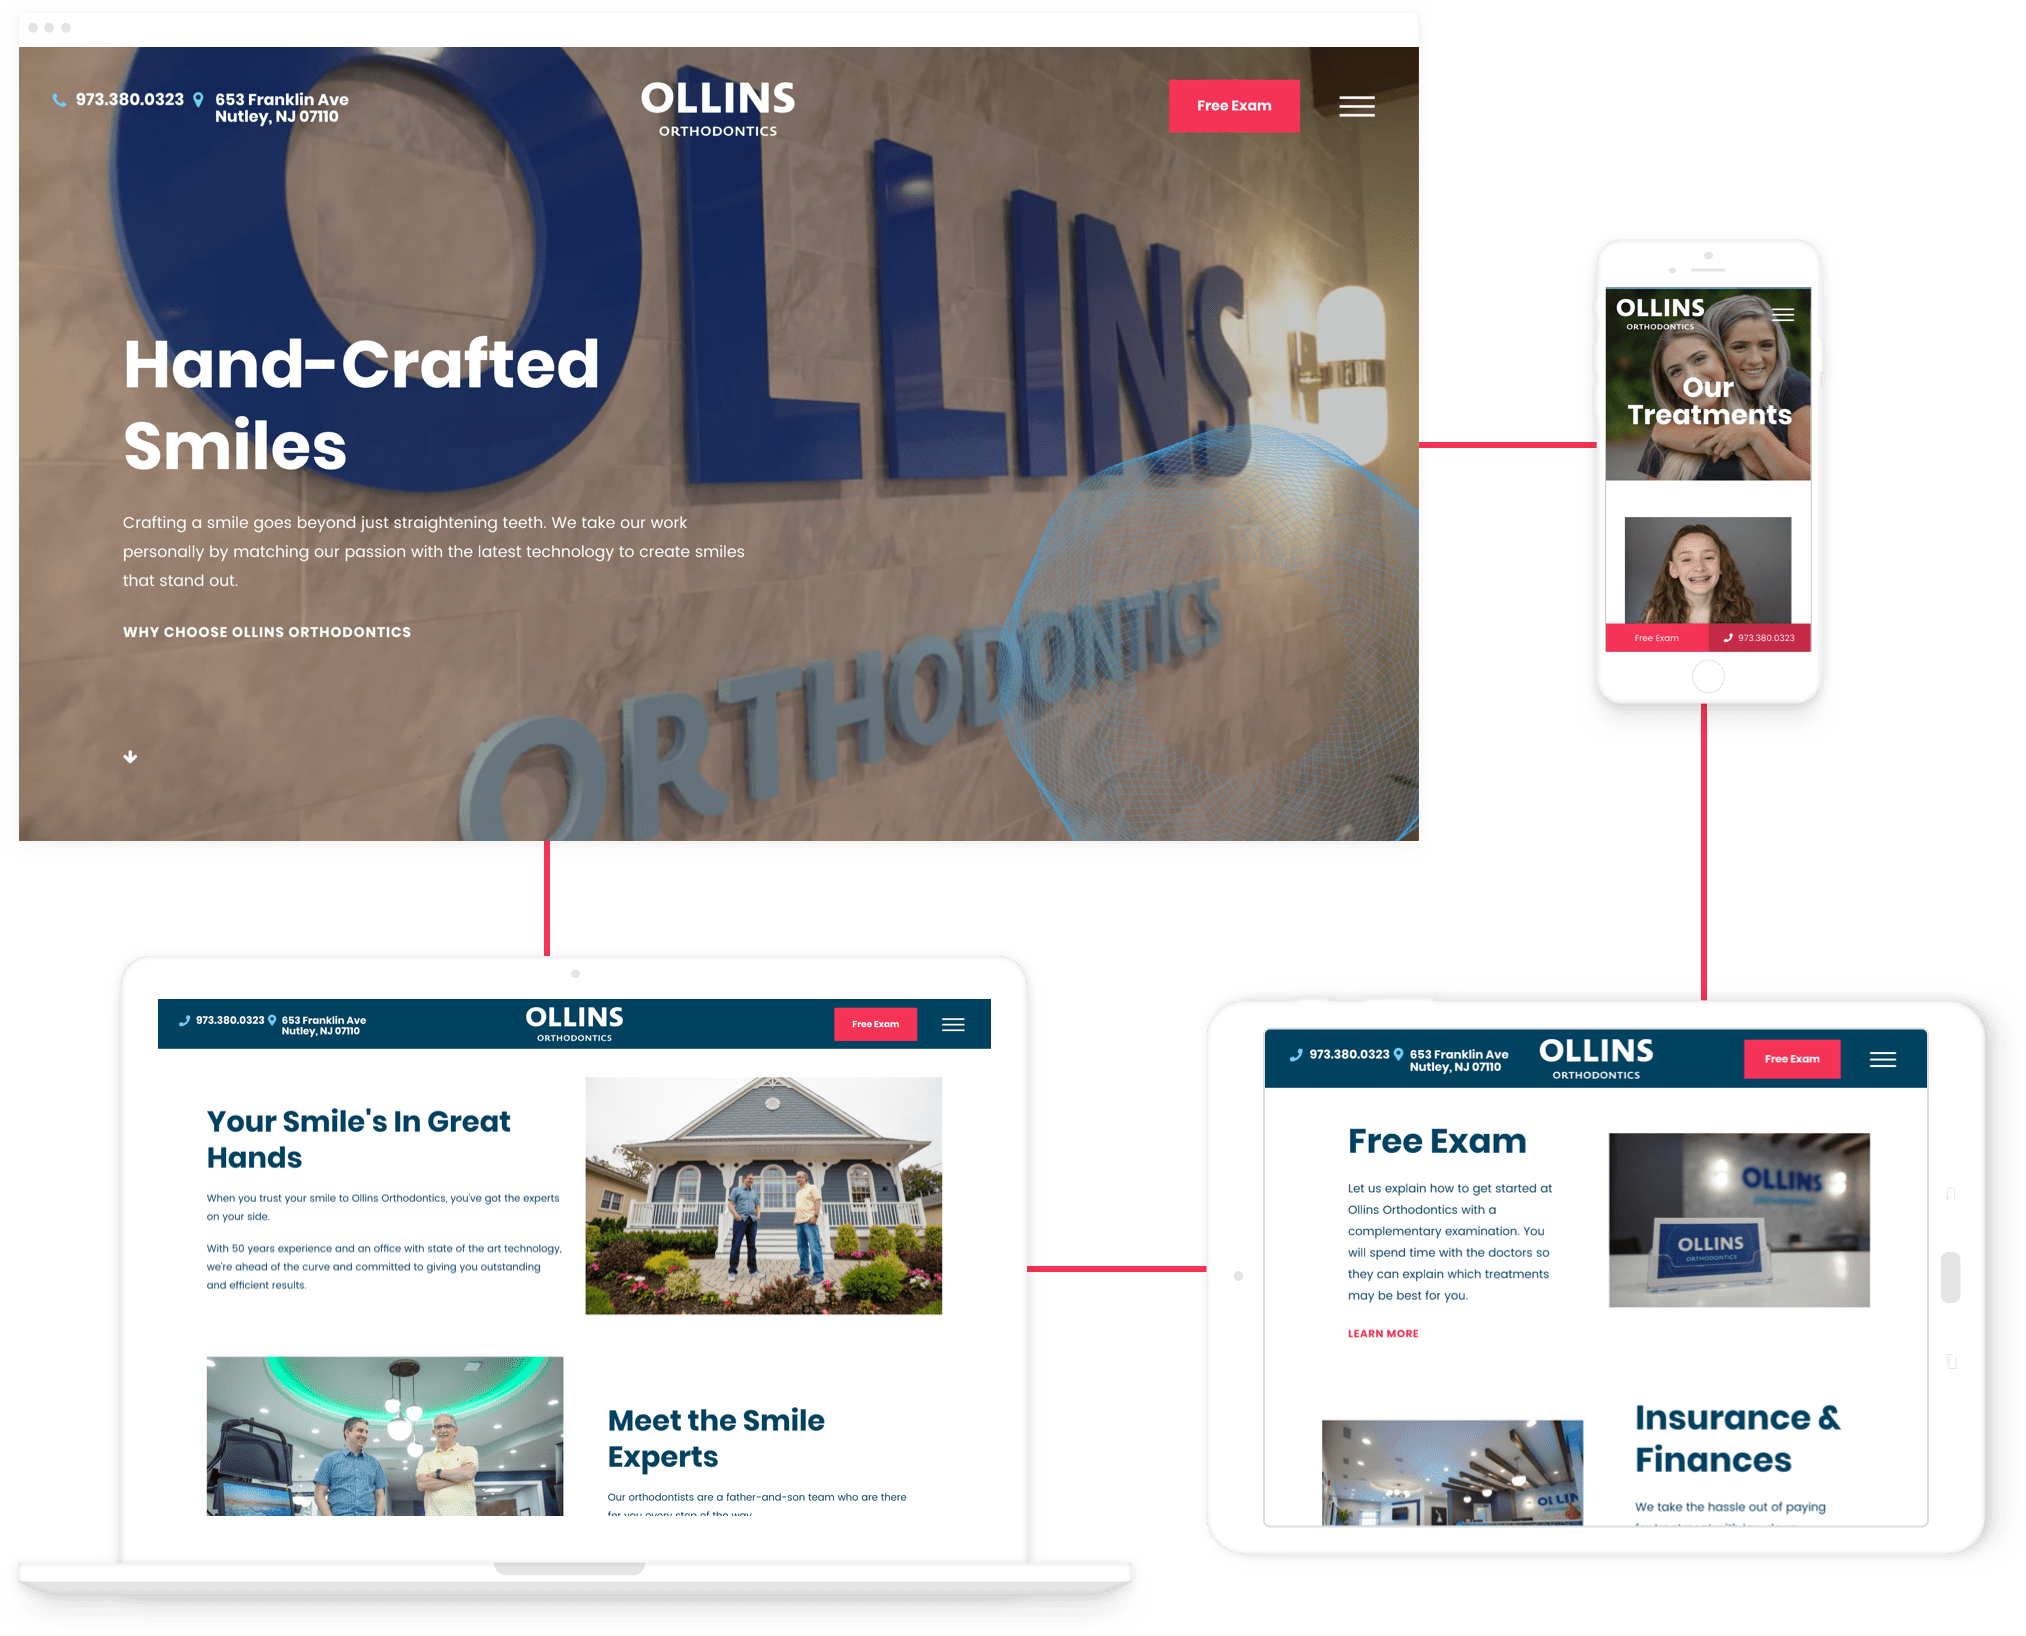 Ollins Orthodontics Homepage